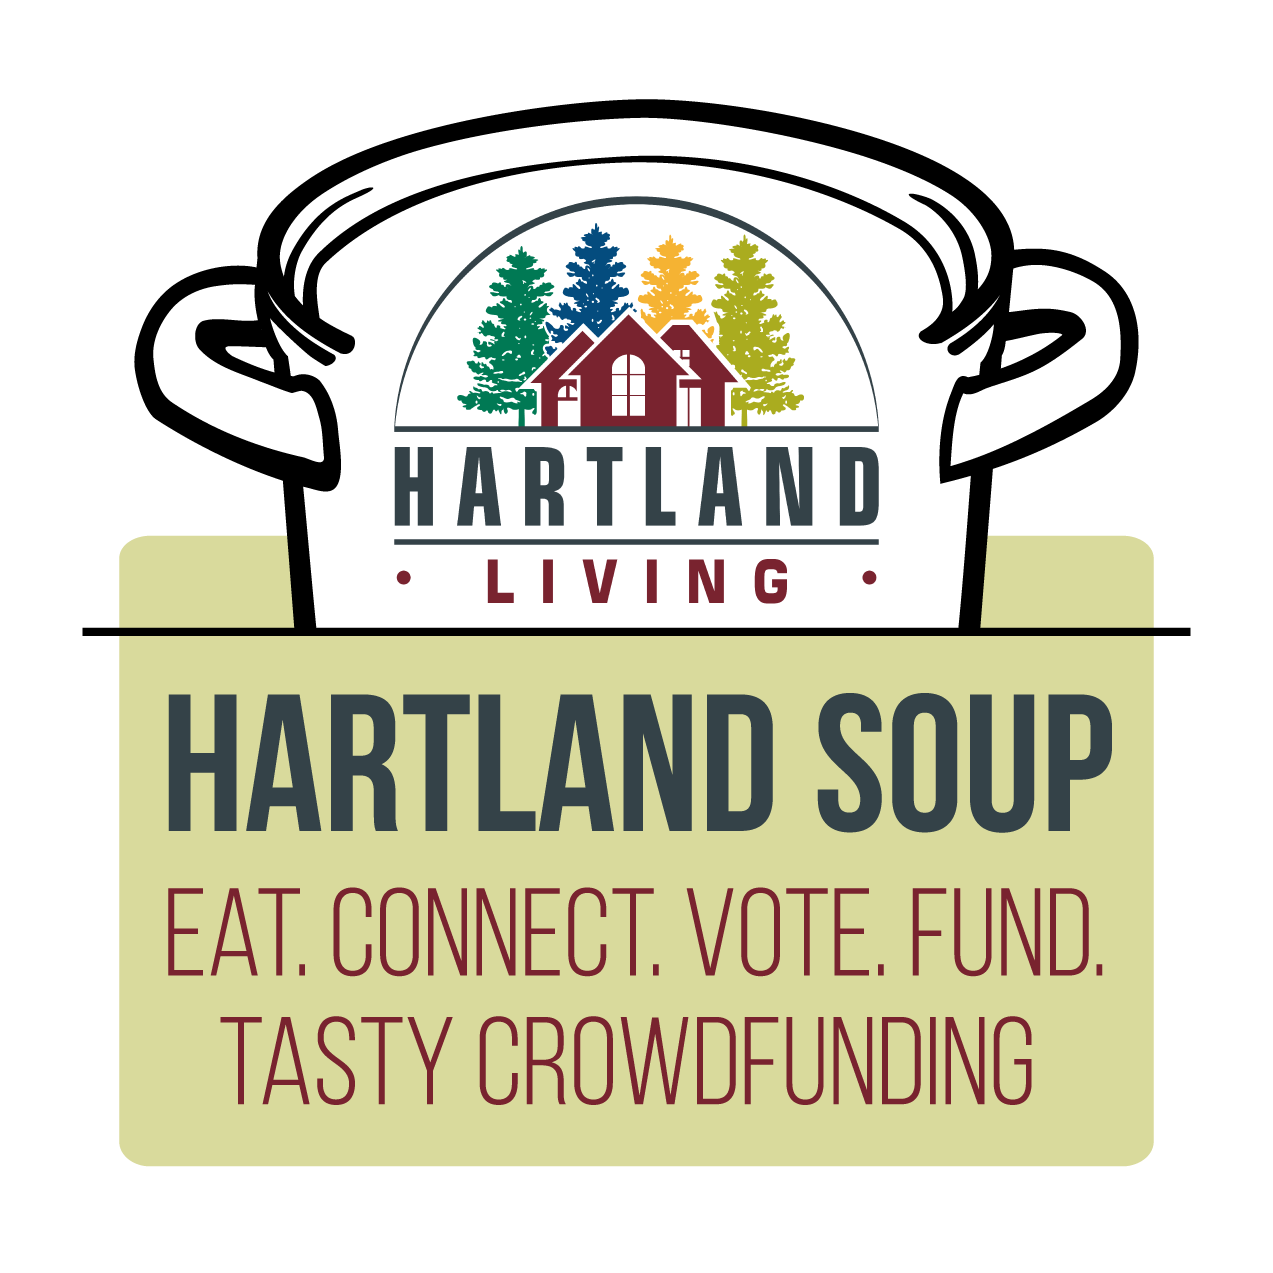 Hartland SOUP - Outside!